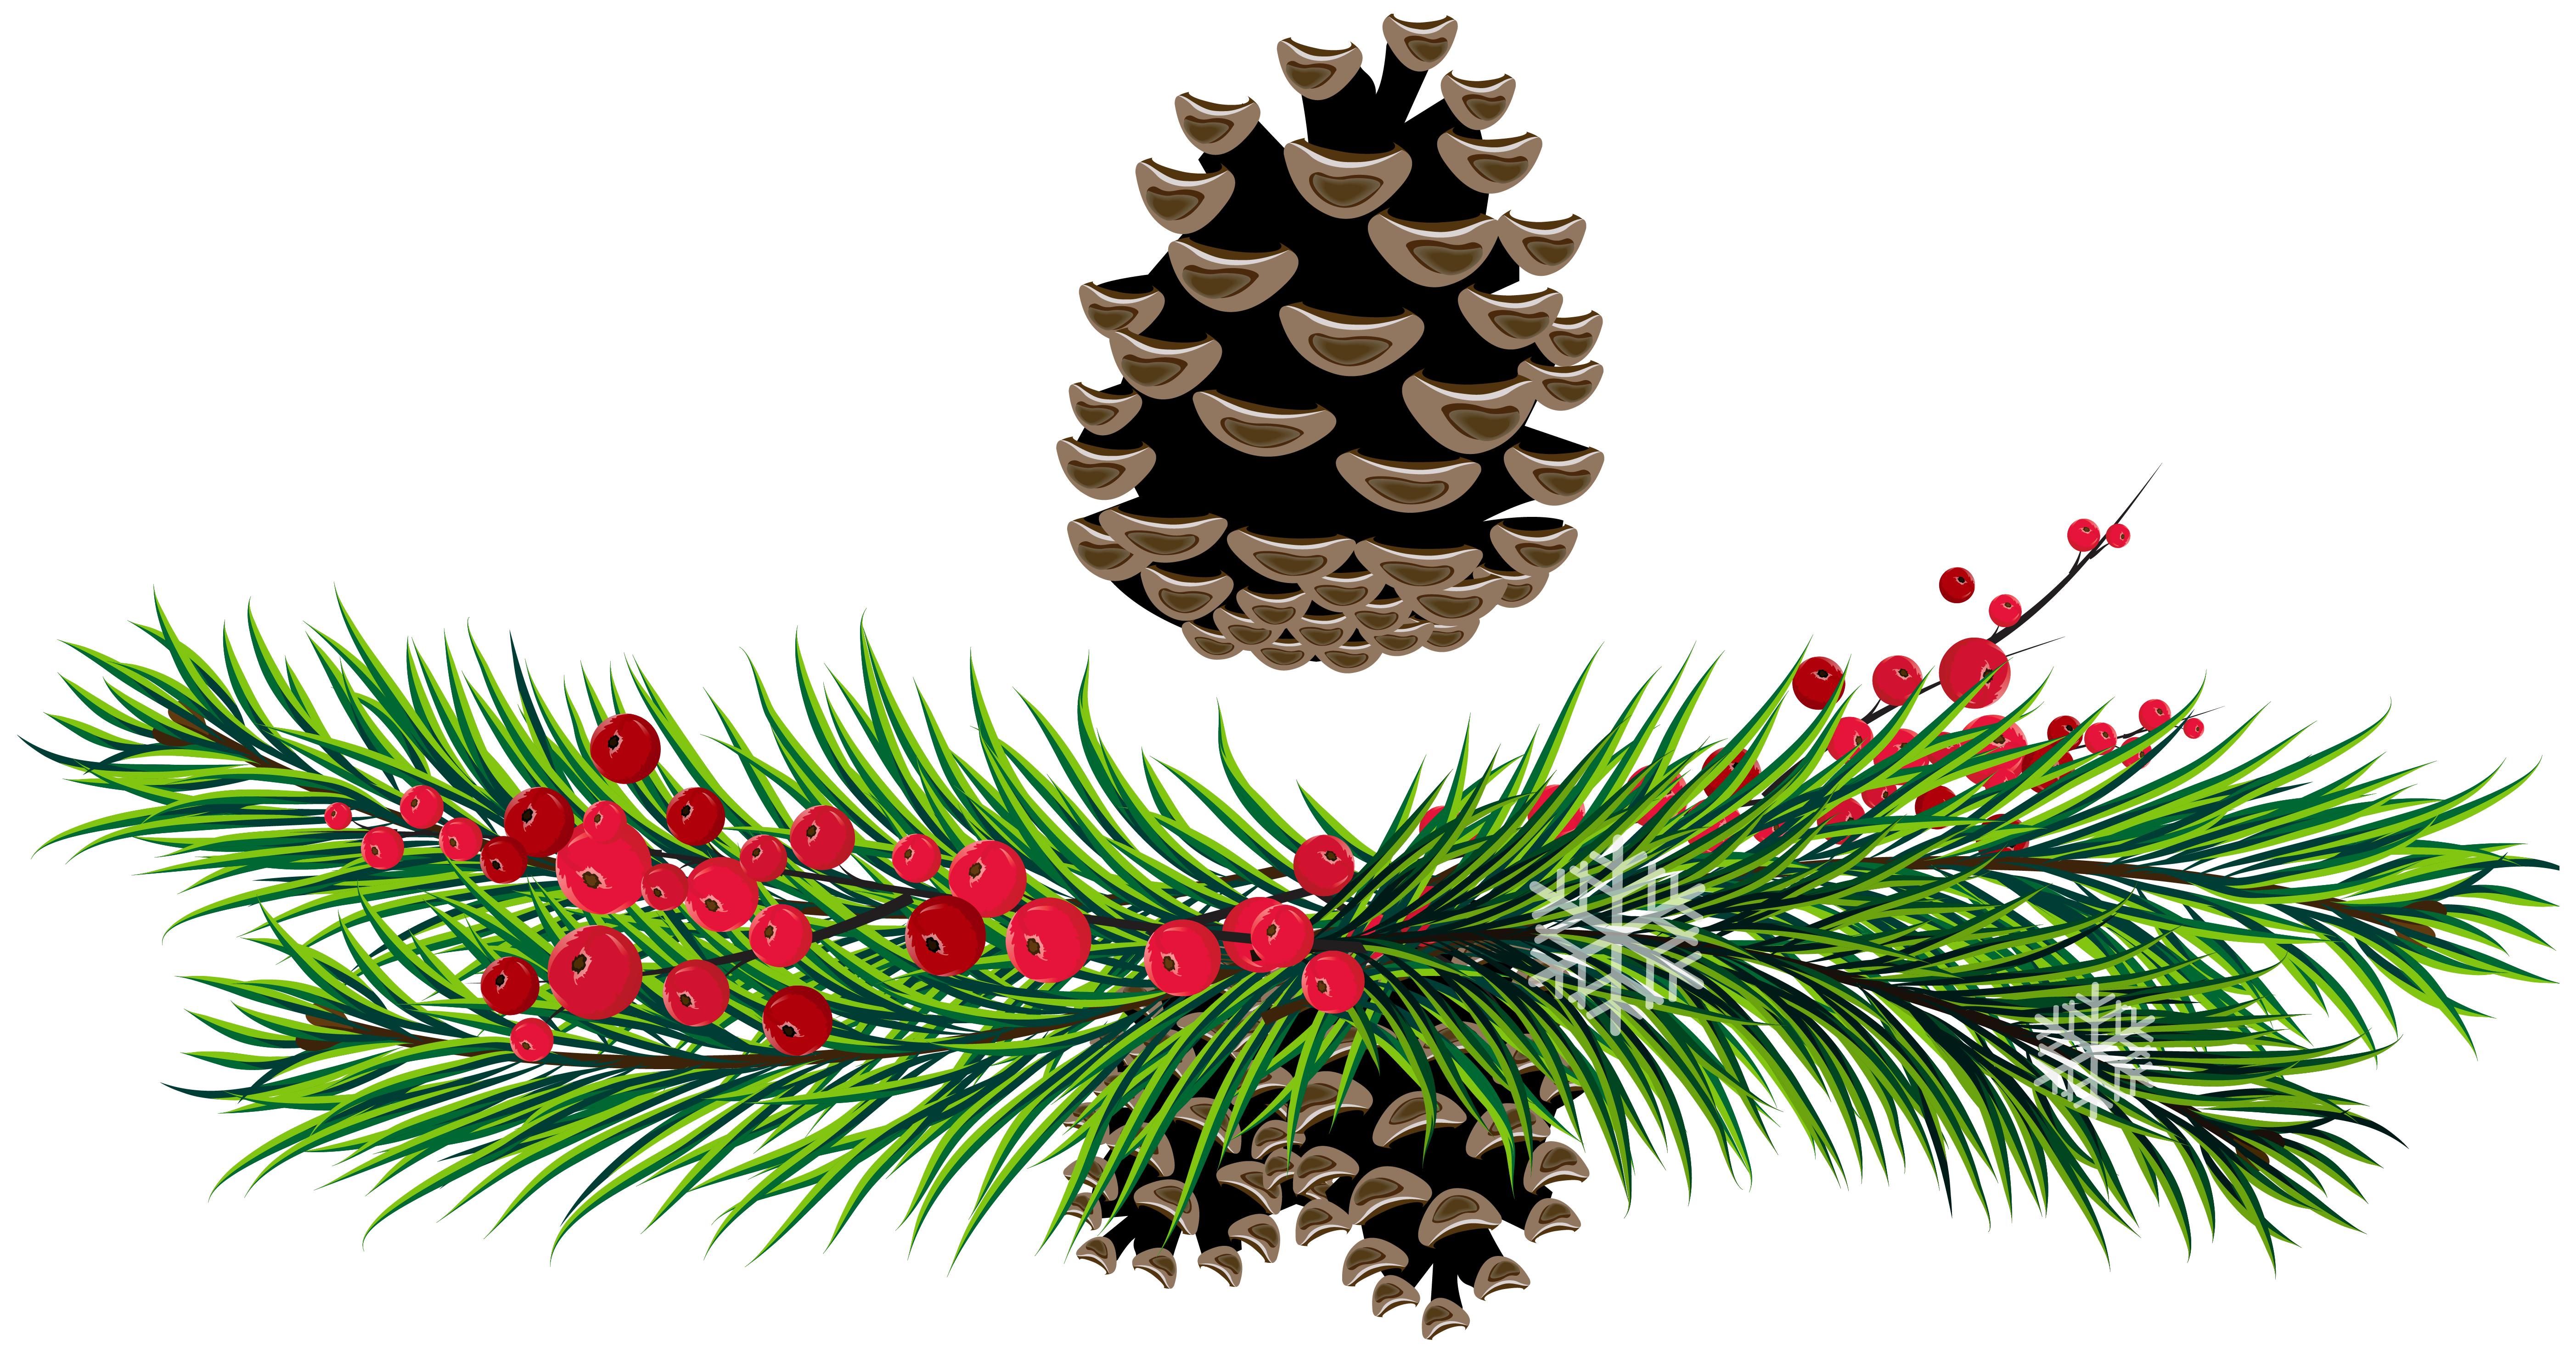 clipart transparent download Pine branches and cones. Garland vector evergreen